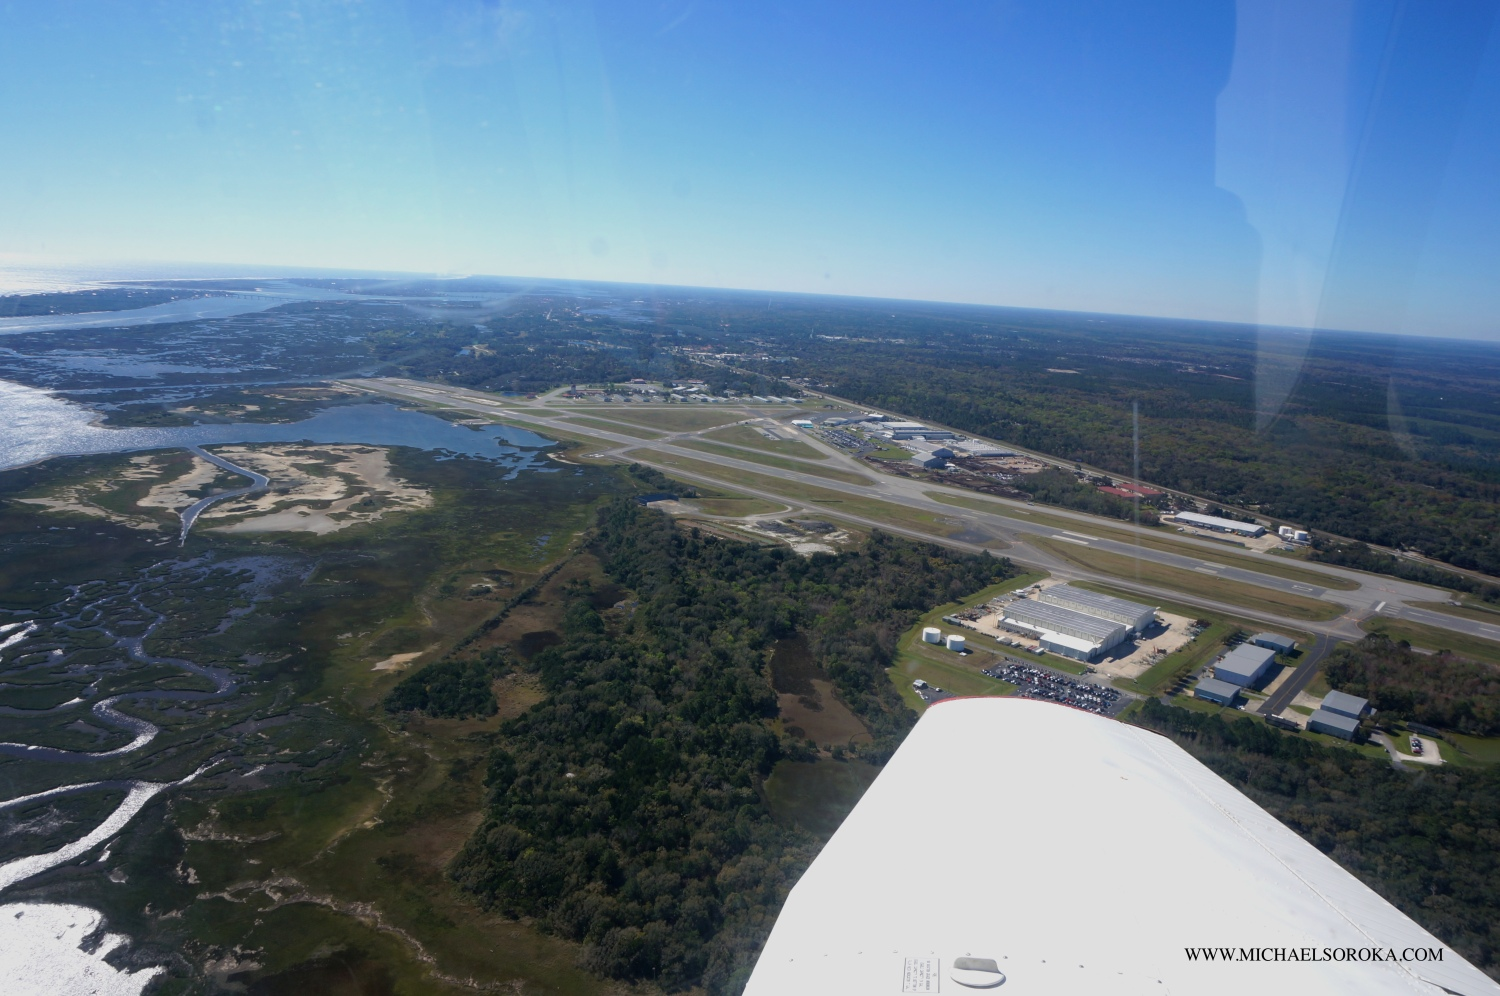 st. augustine airport